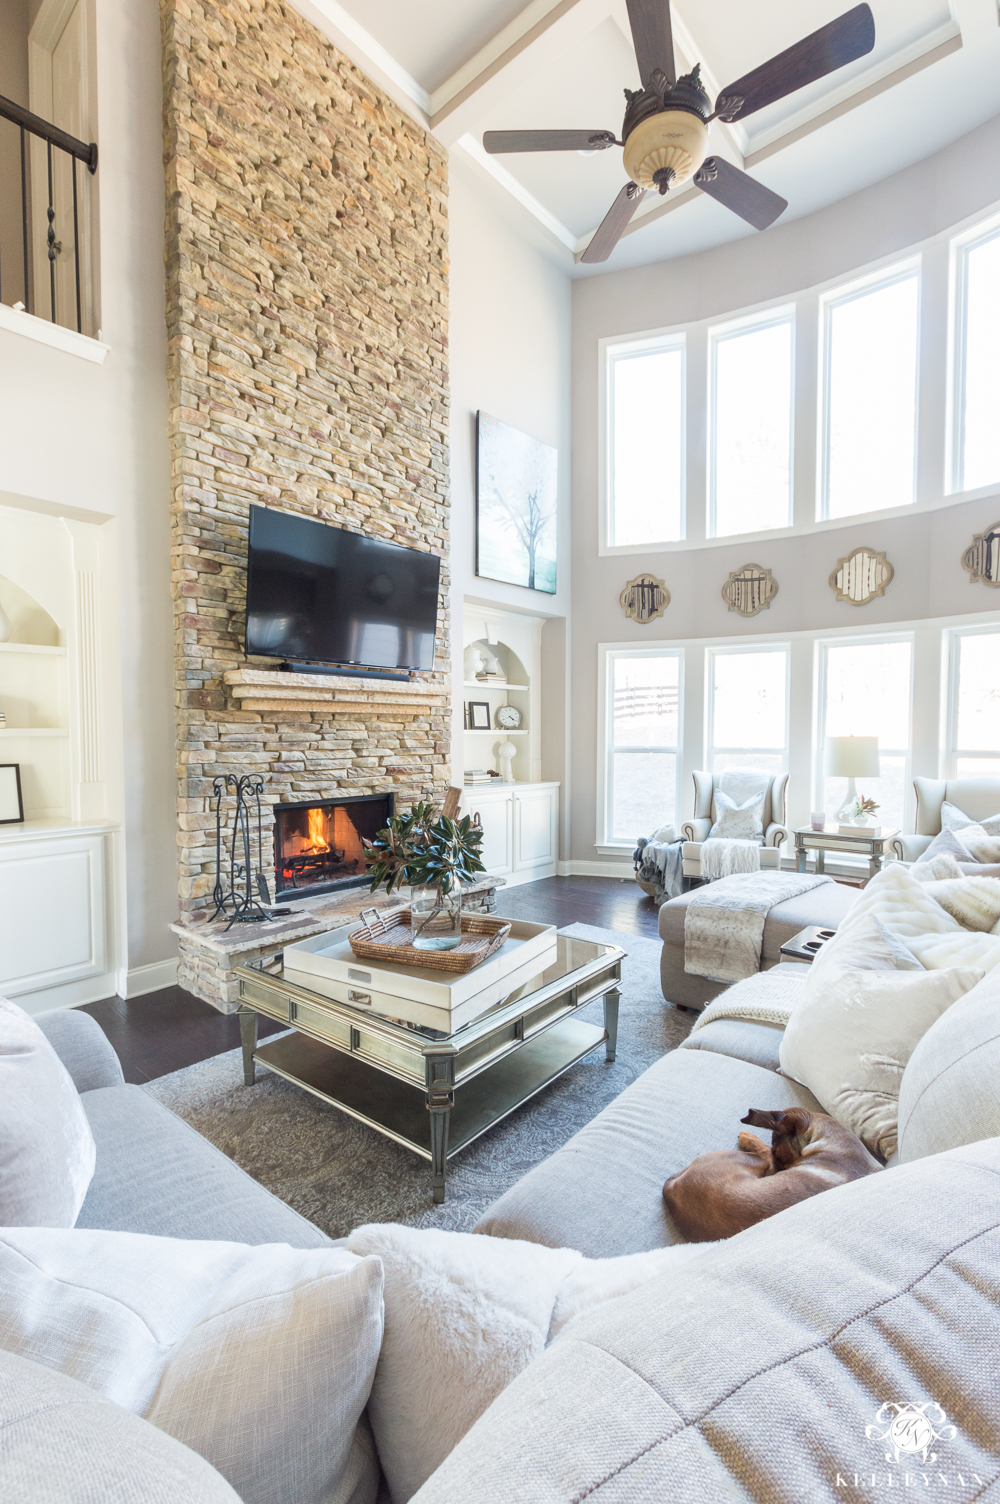 Two Story Fireplace Design Ideas Bathroomfurniturezone 2: Nine Tips To Transition Your Holiday Decor To Winter In